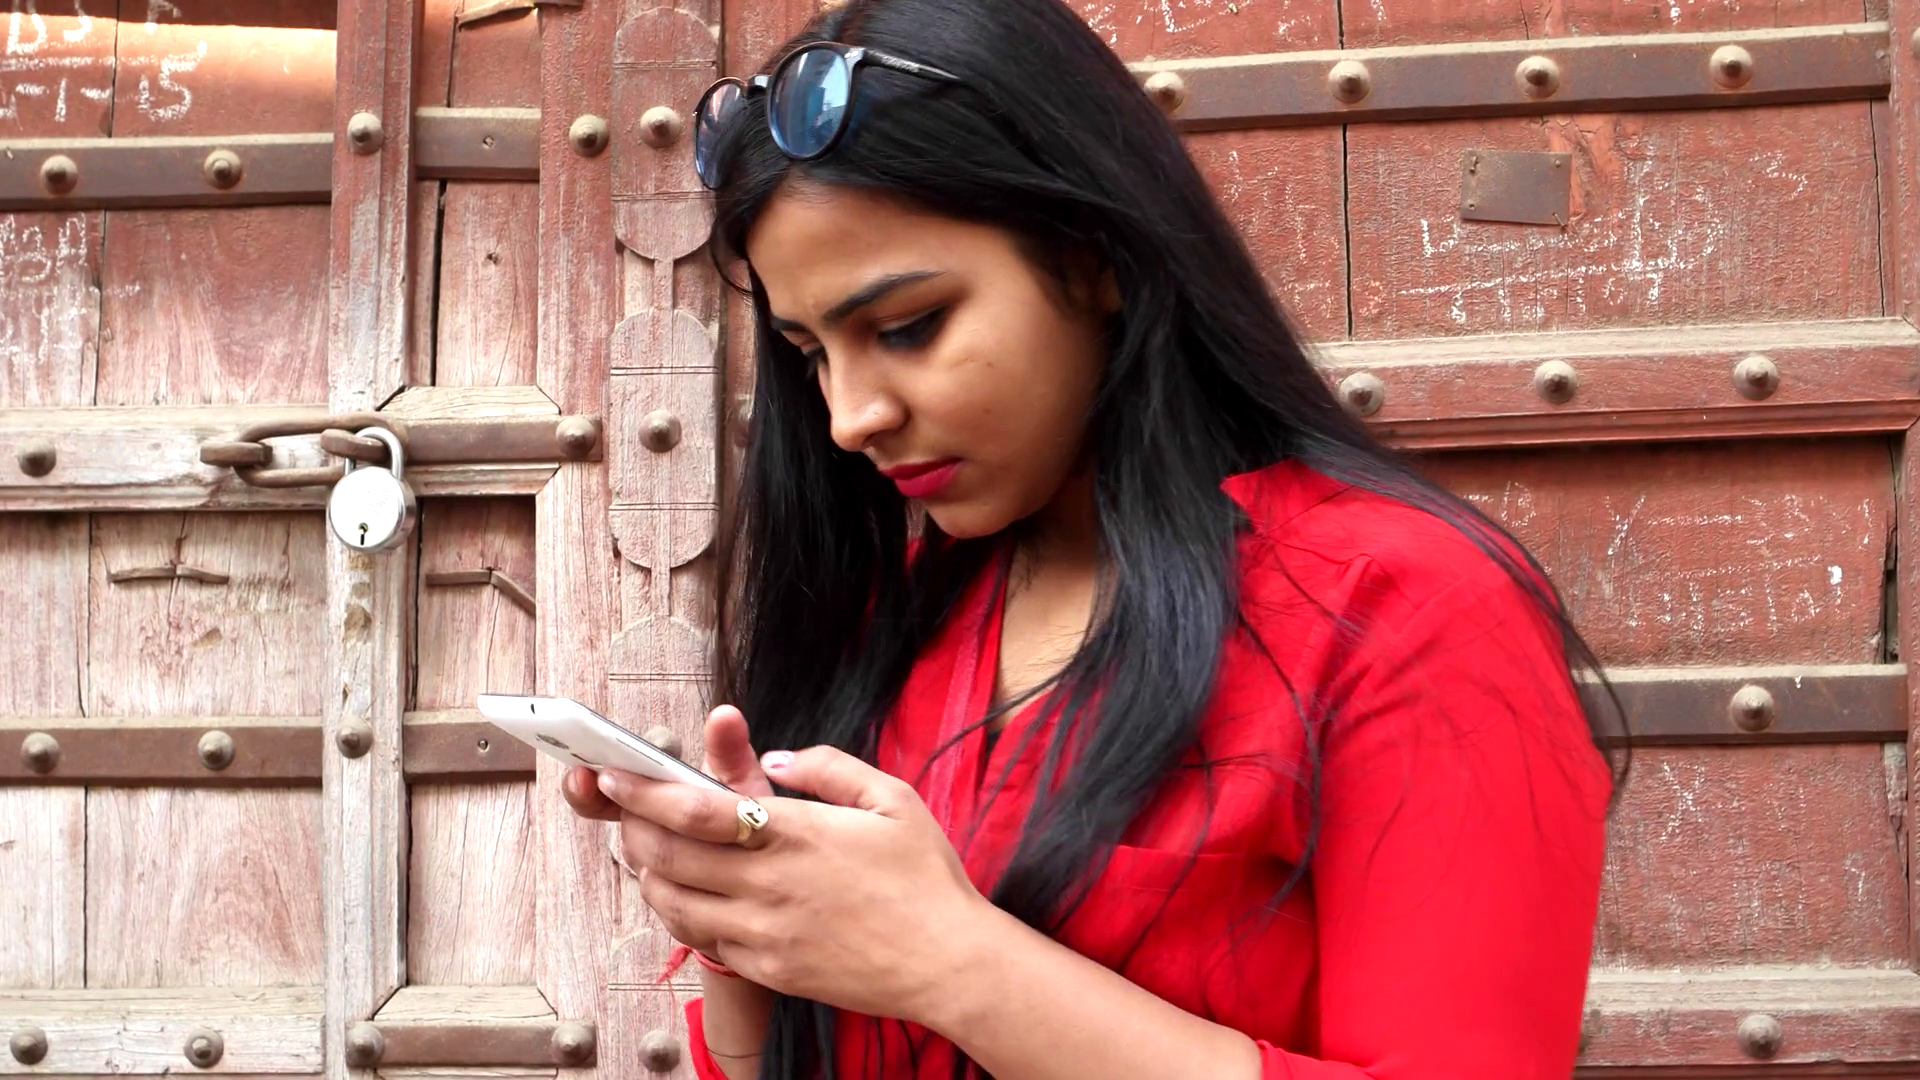 5 Best Women Safety Apps For Women With Smartphones